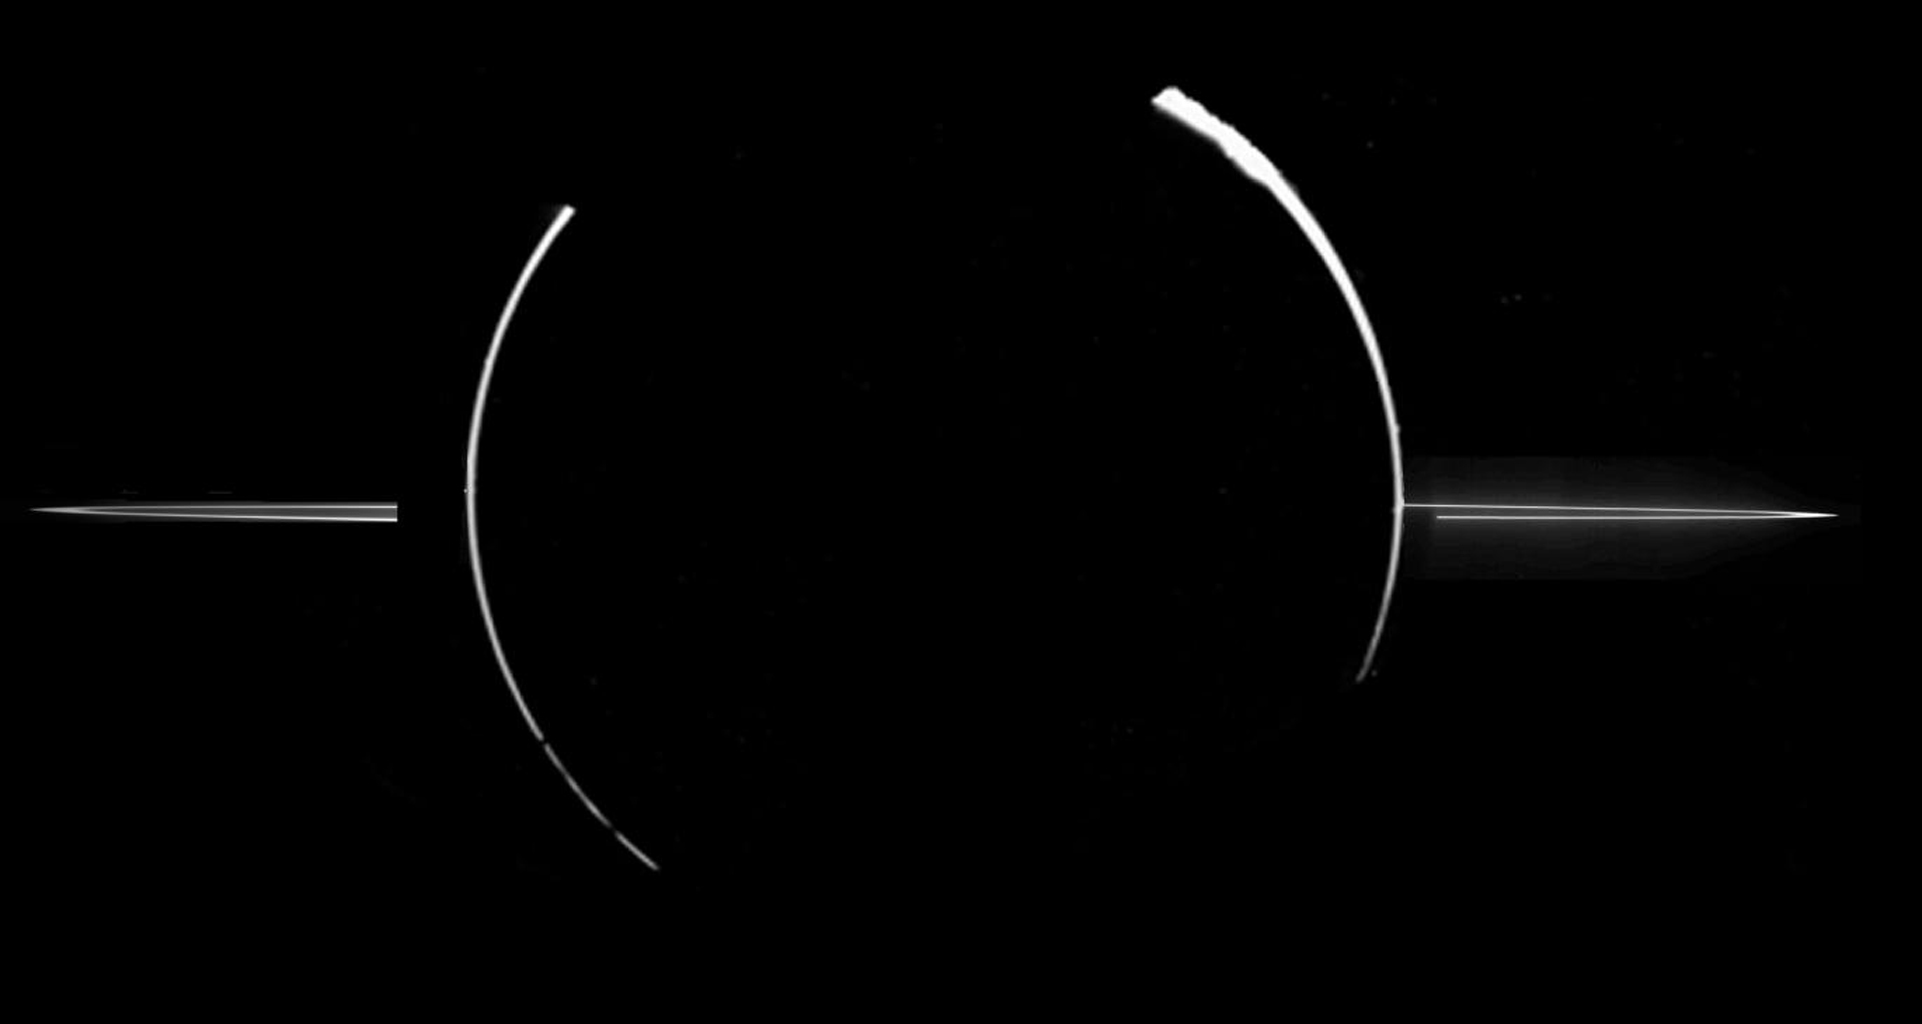 This mosaic of Jupiter's ring system was acquired by NASA's Galileo spacecraft when the Sun was behind the planet, and the spacecraft was in Jupiter's shadow peering back toward the Sun.